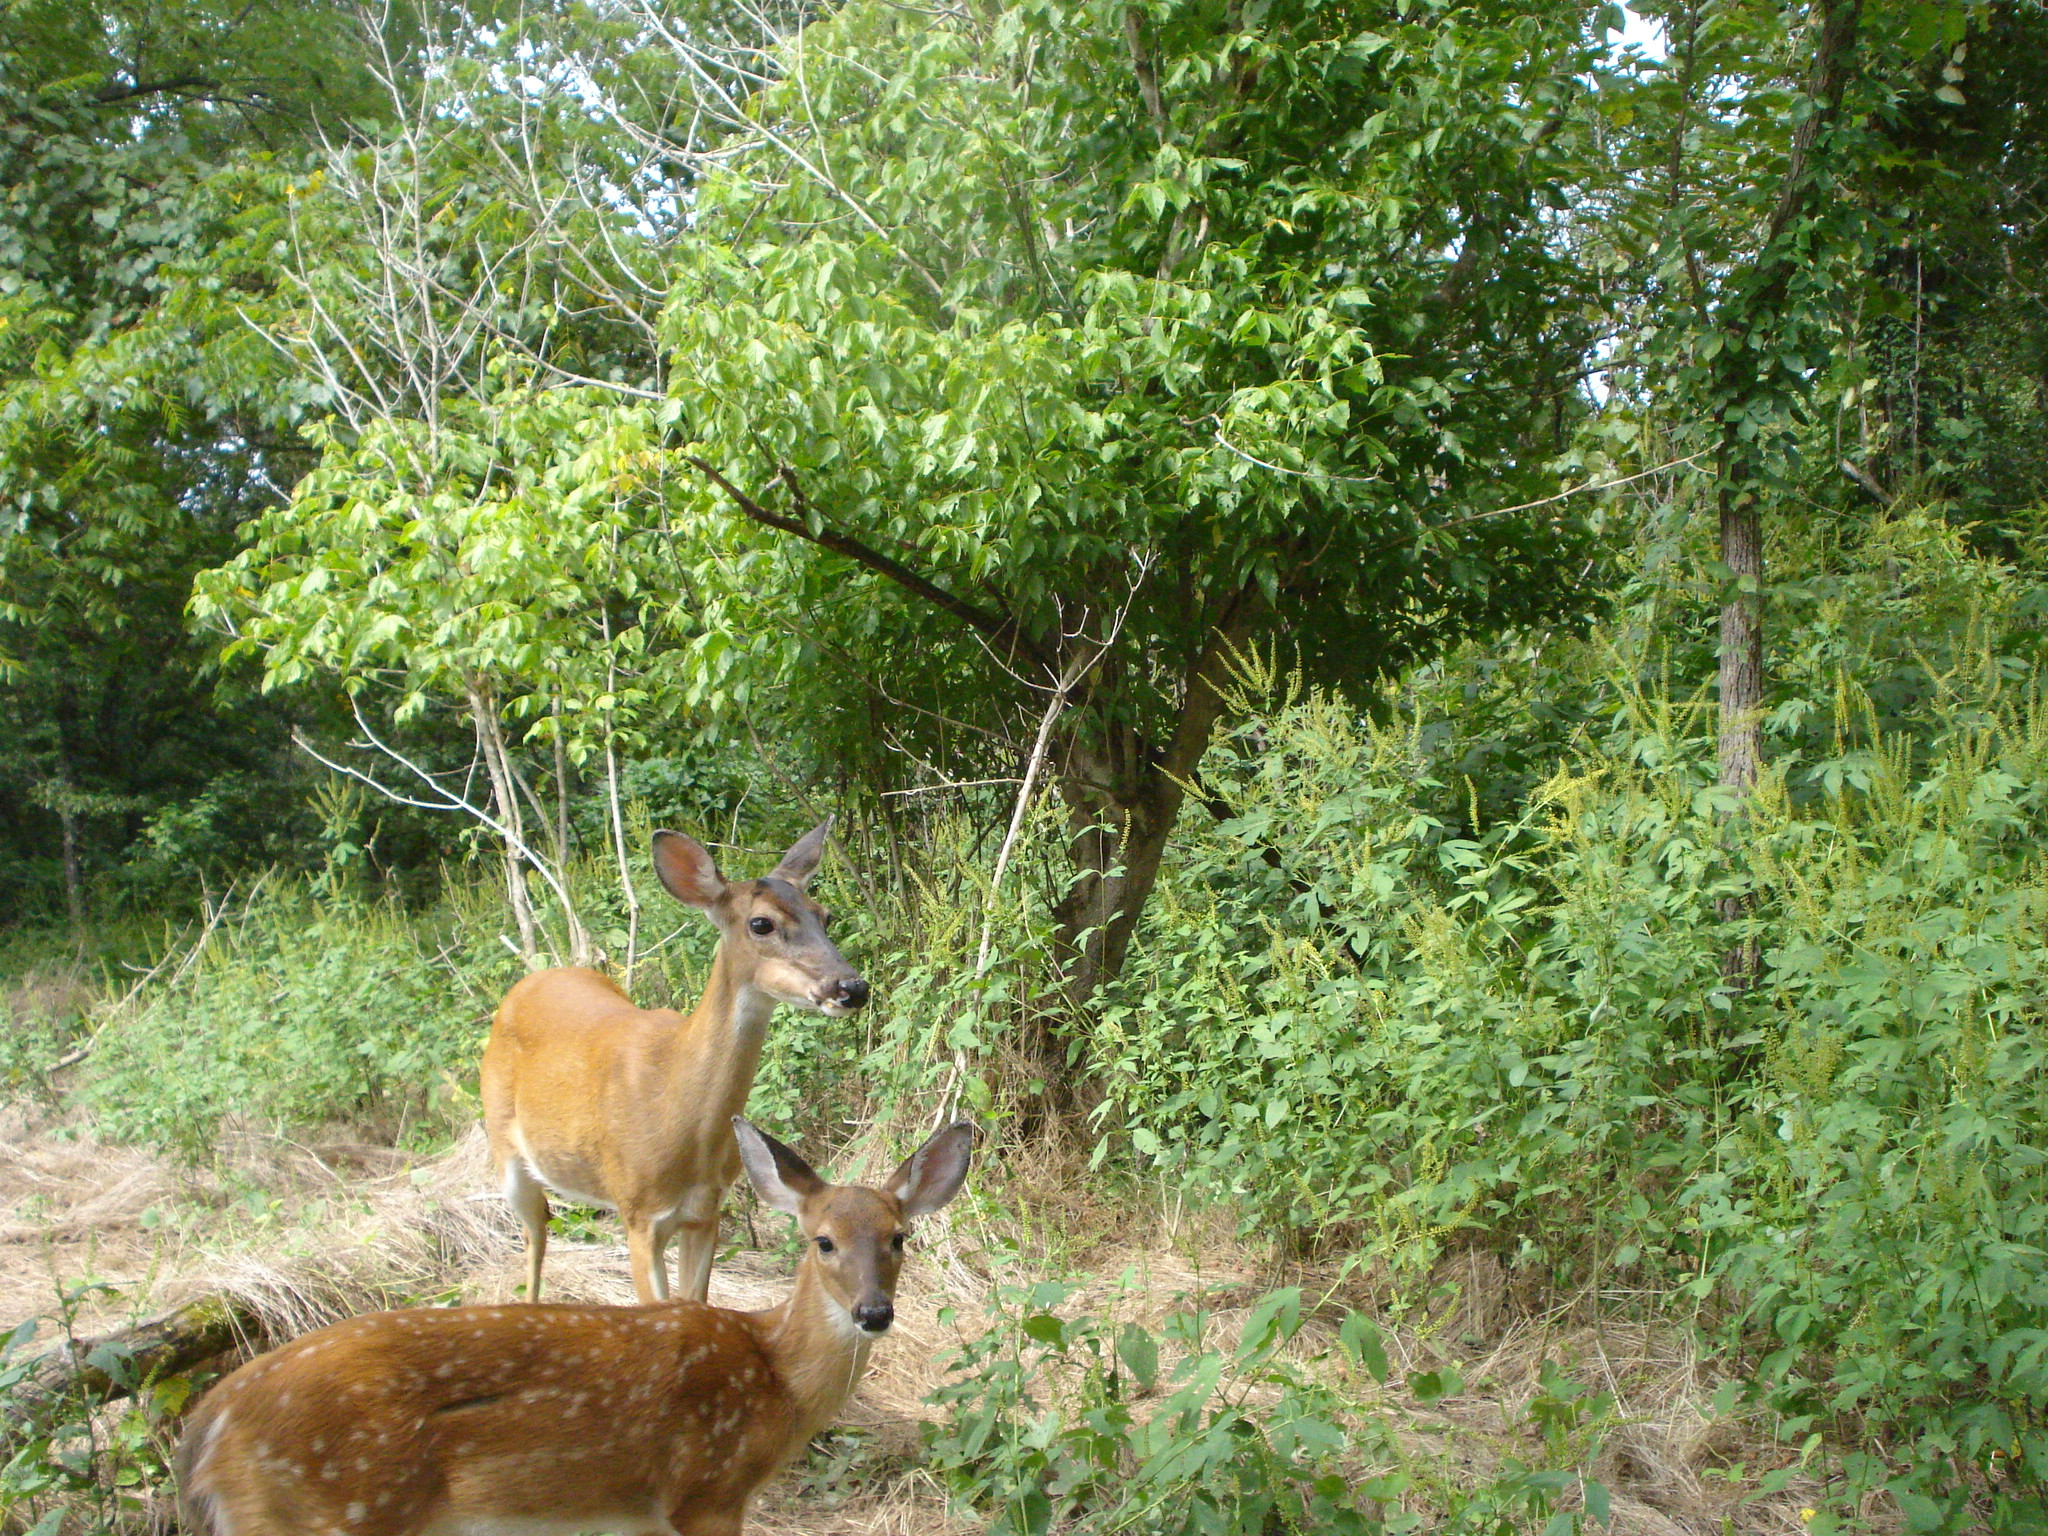 Doe & Fawn from game camera. Mark Smith